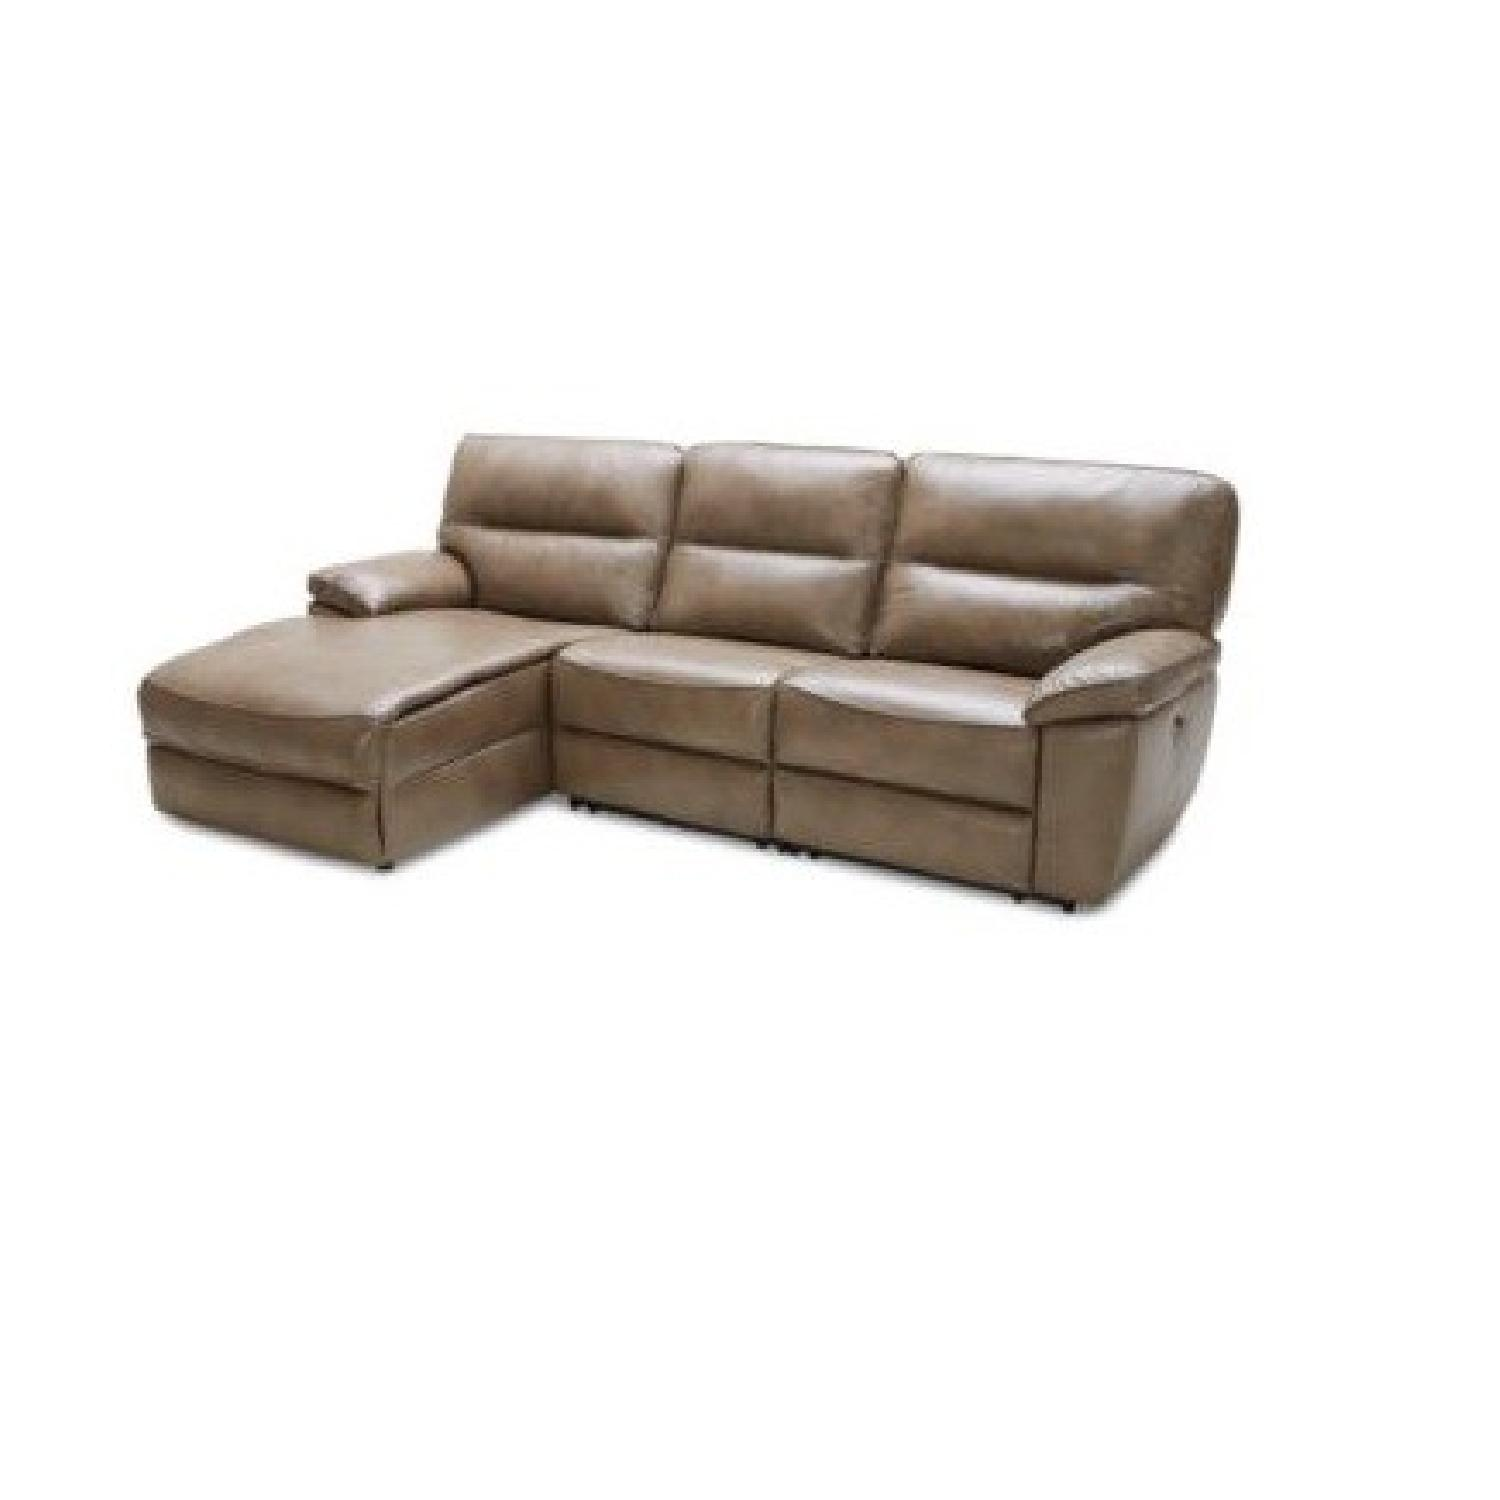 Macyu0027s Leather Power Recliner Sectional Sofa W/ Chaise ...